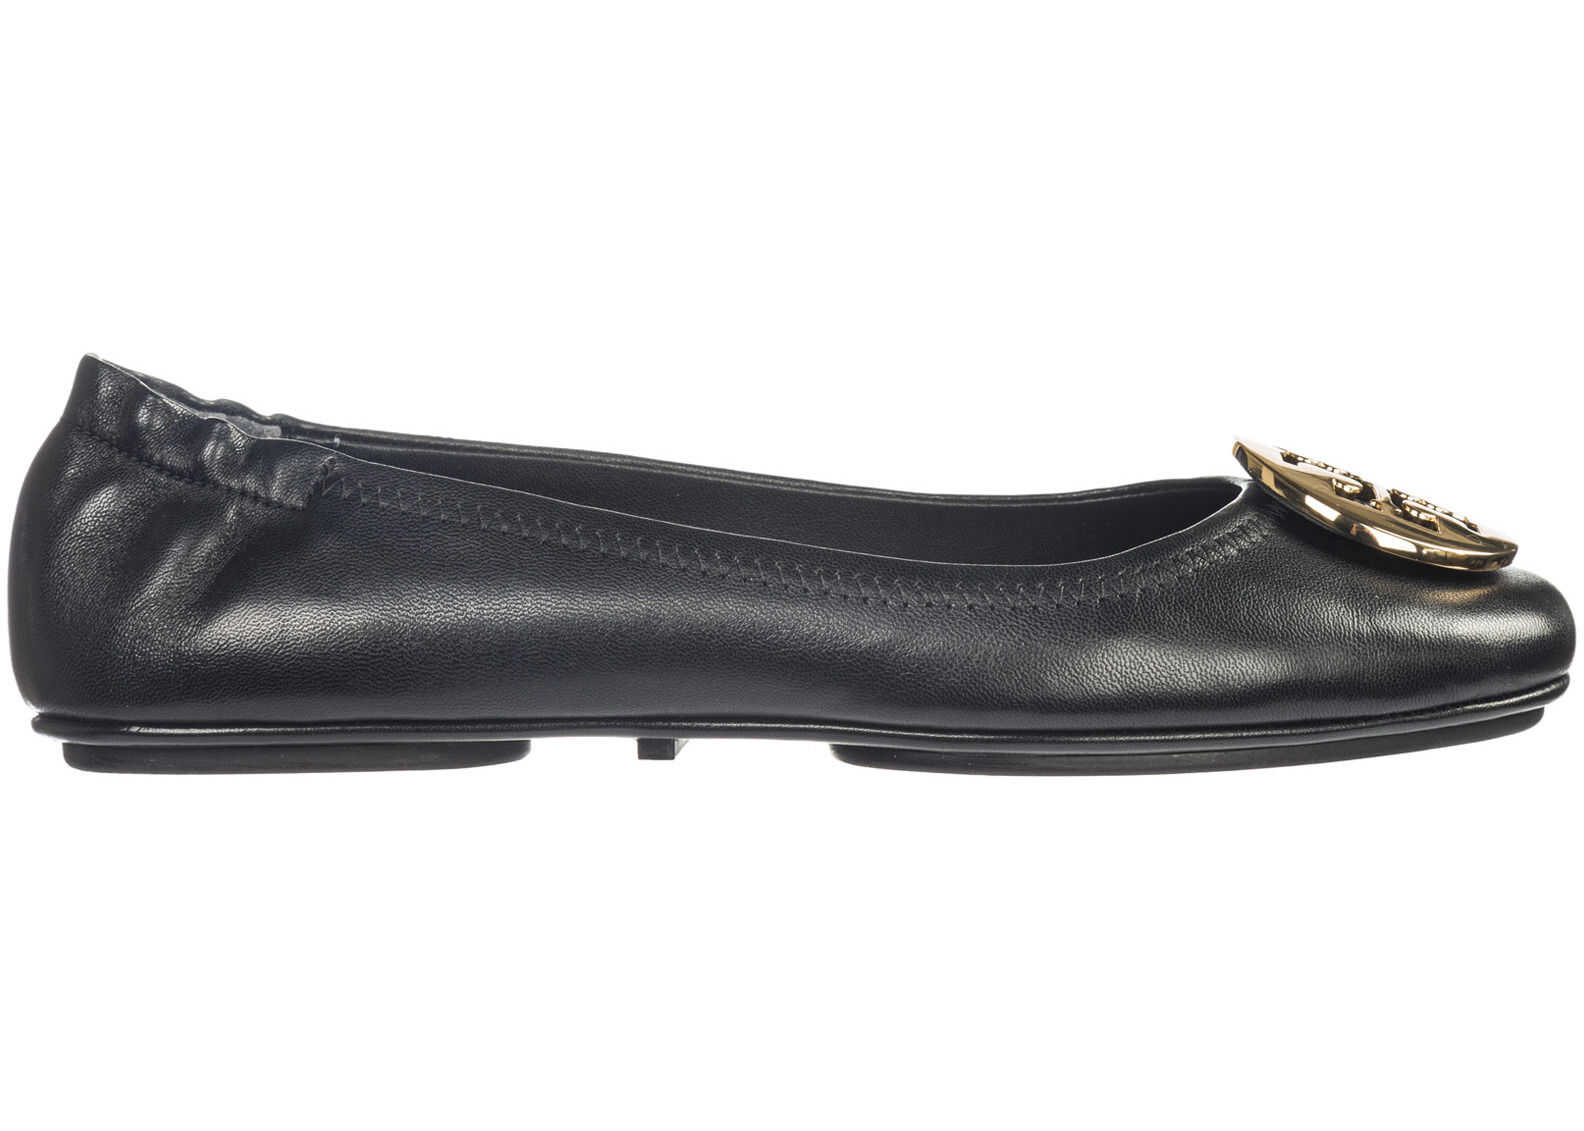 Tory Burch Flats Ballerinas Black